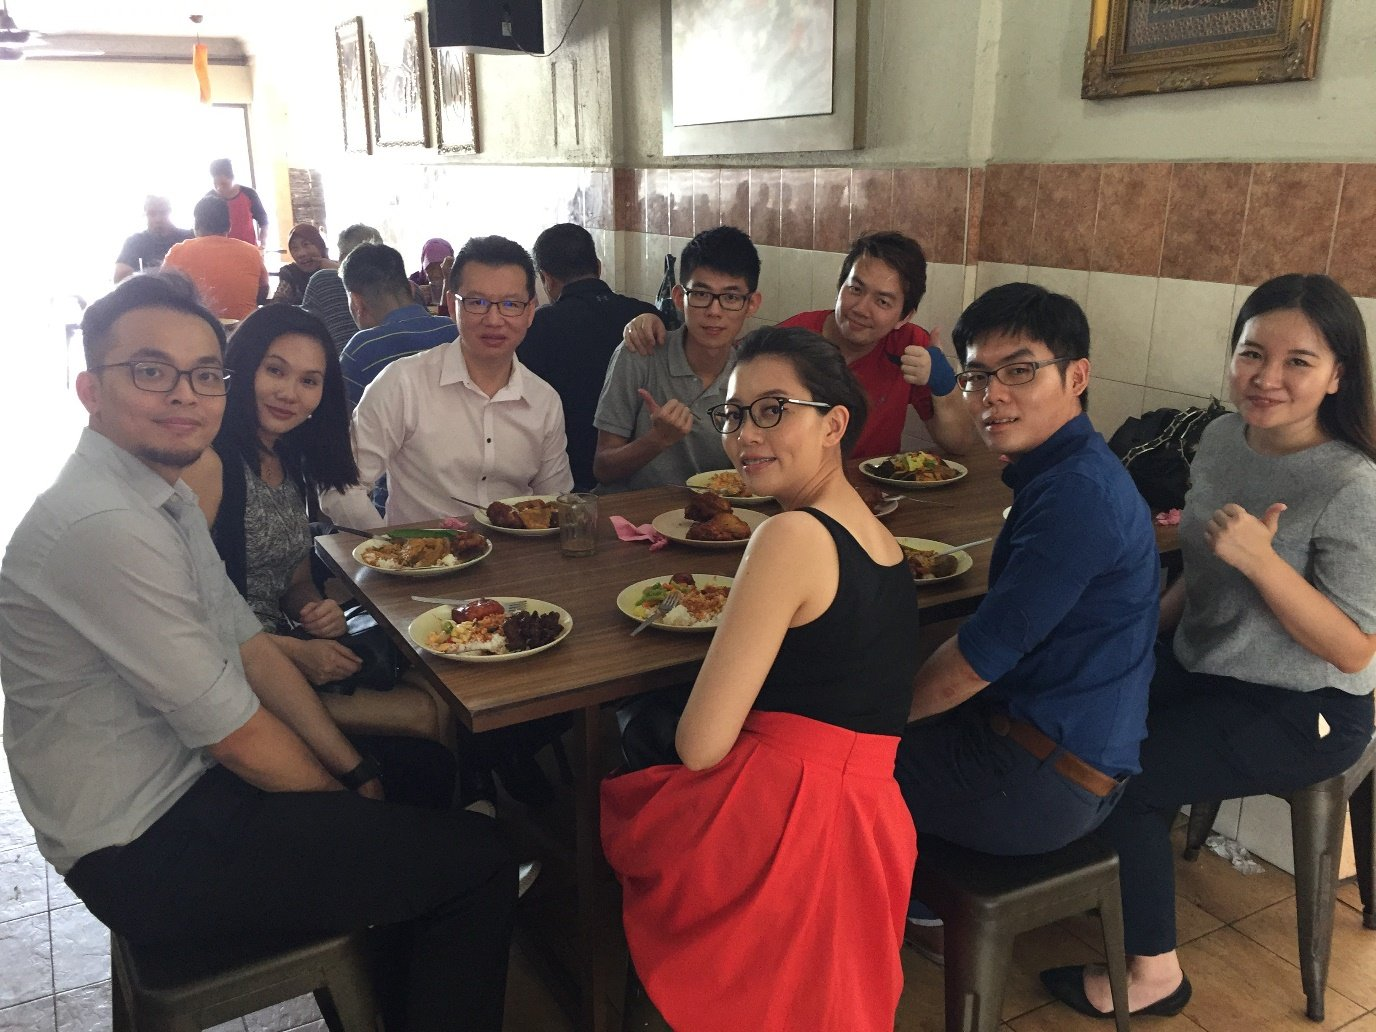 Isaac Wong having lunch with the doctors of Puretouch Clinic at Cargas, having Nasi Kandar